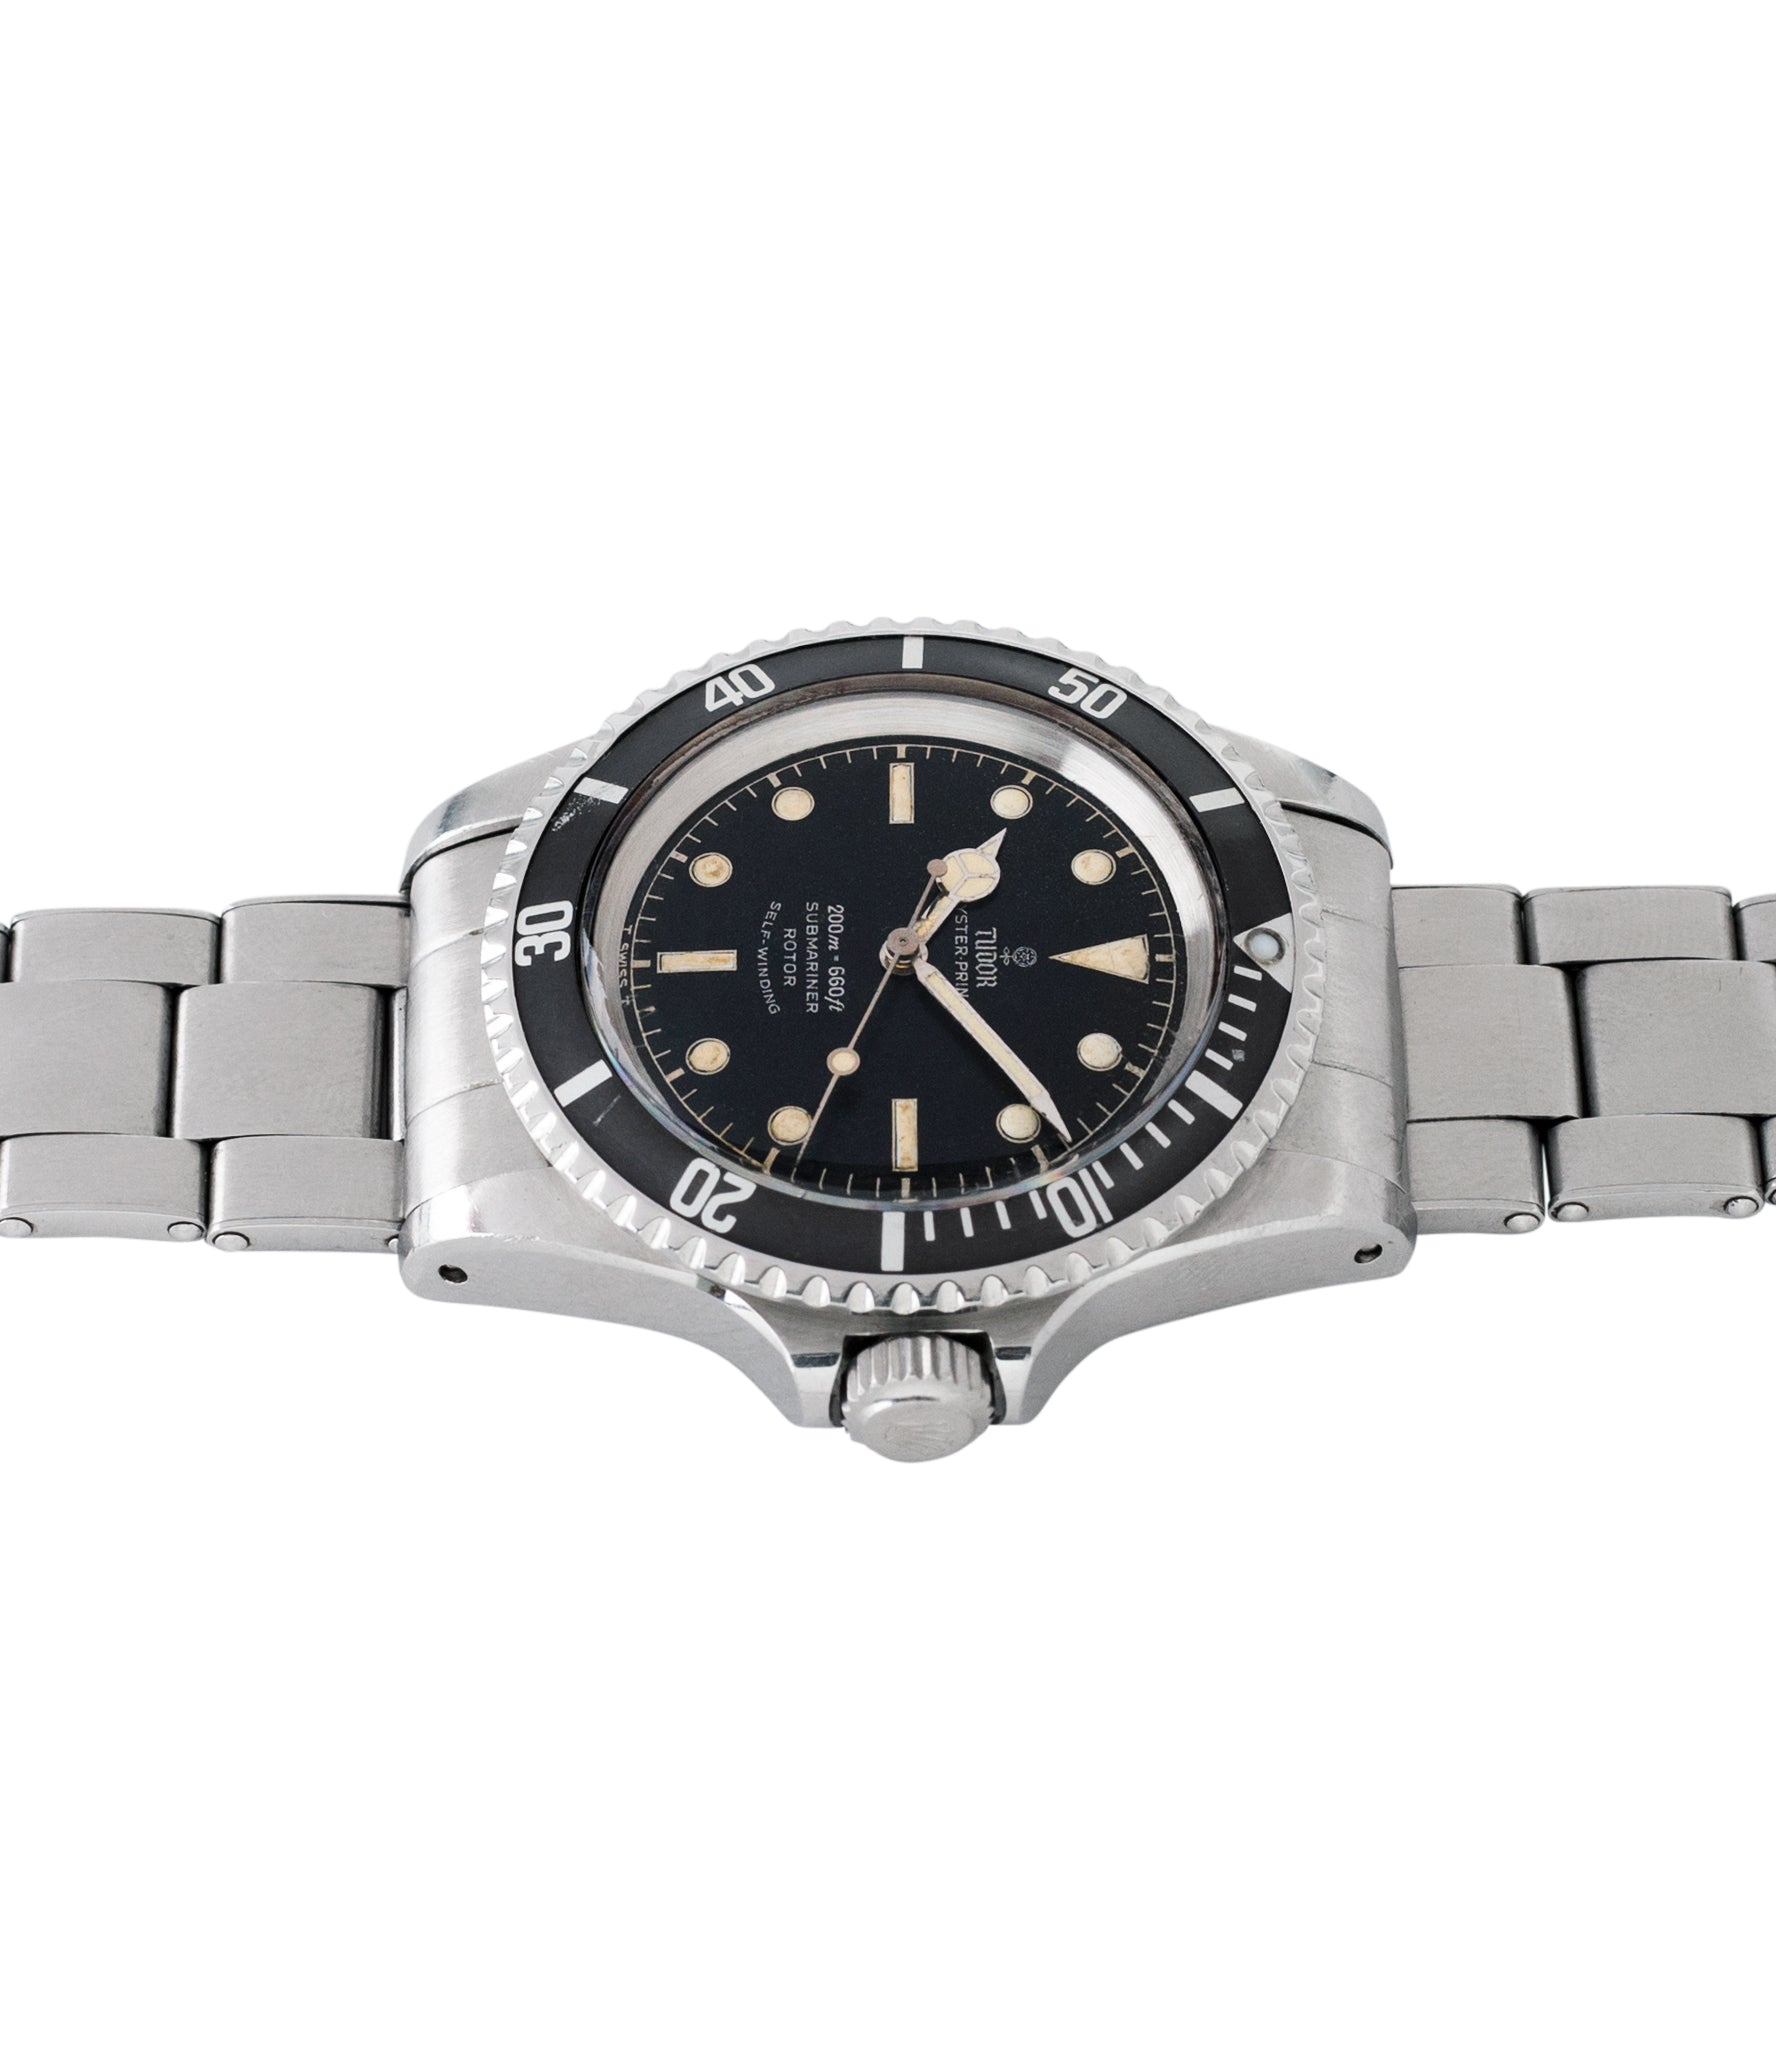 Tudor Submariner 7928 Oyster Prince Cal. 390 automatic sport watch at A Collected Man London online vintage watch specialist UK